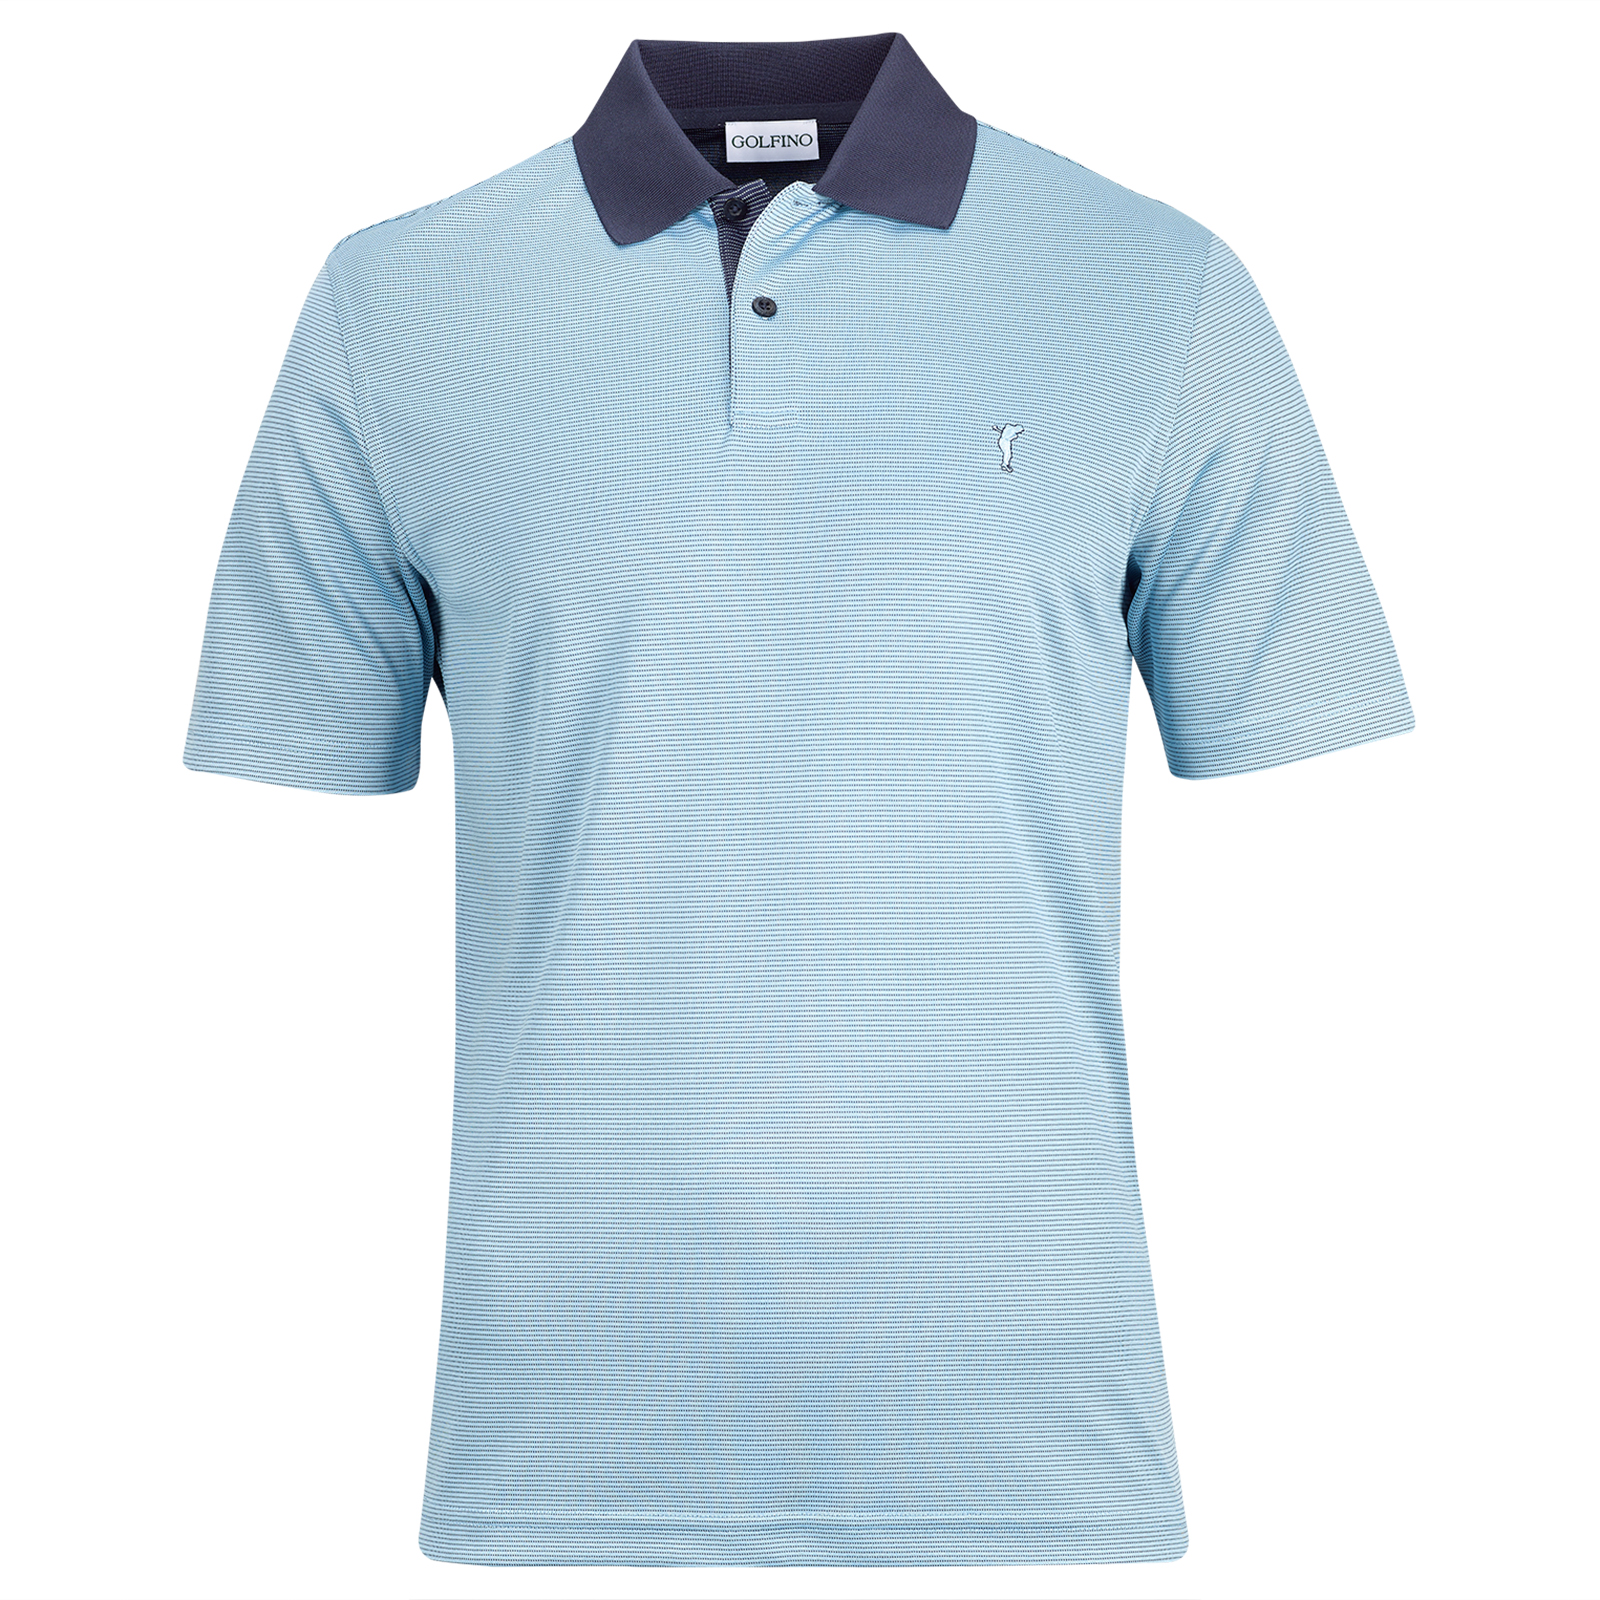 High Performance men's short-sleeve polo with Quick Dry in regular fit